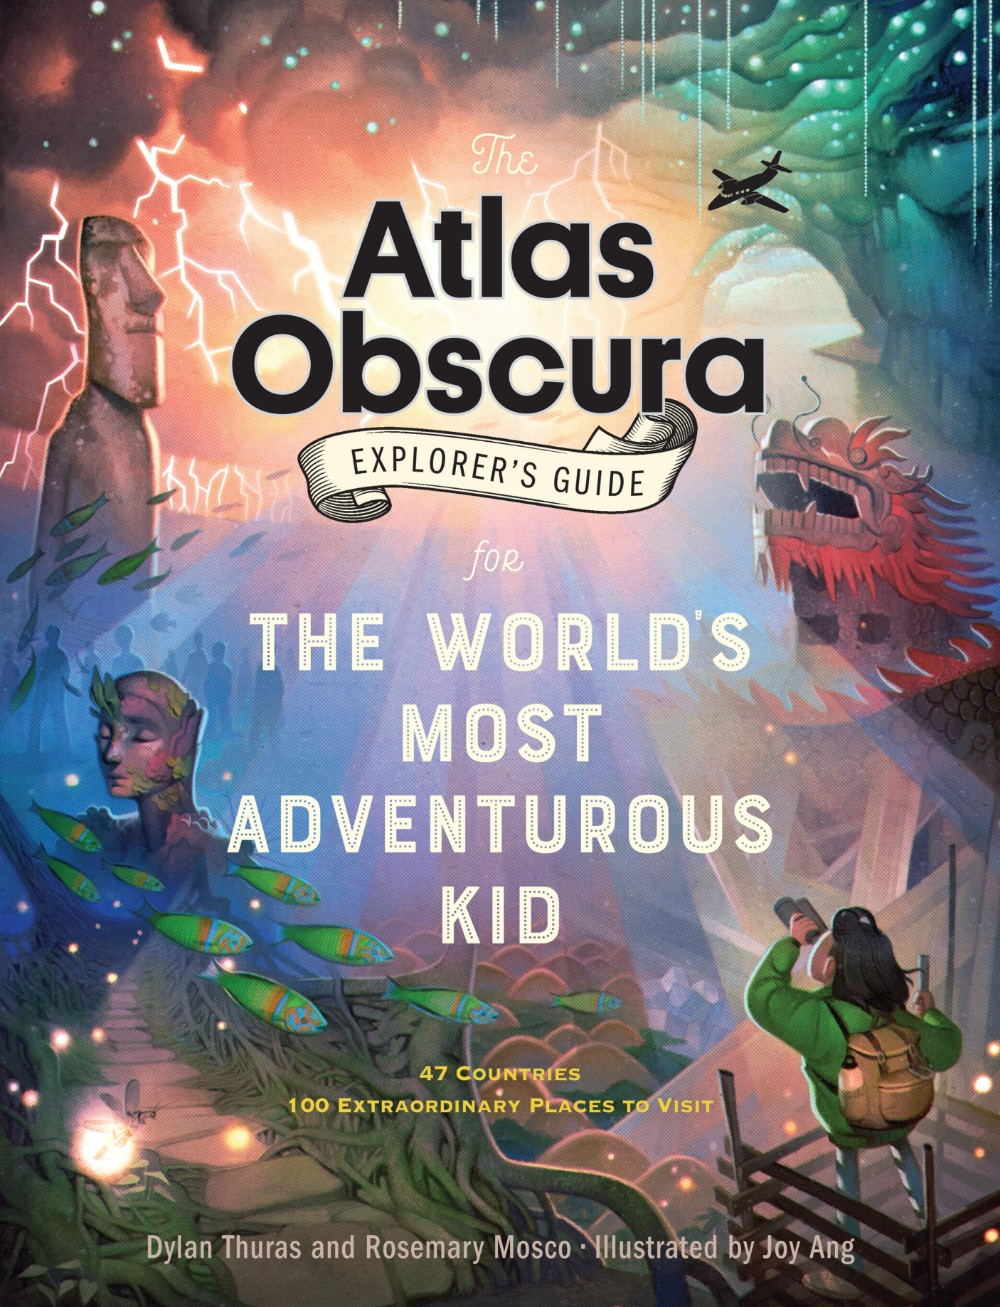 cover of Atlas Obscura Explorer's Guide for the World's Most Adventurous Kid, which has an illustration including a dragon sculpture, an Easter Island statue and giant crystal caves with a jetliner flying right thru it.